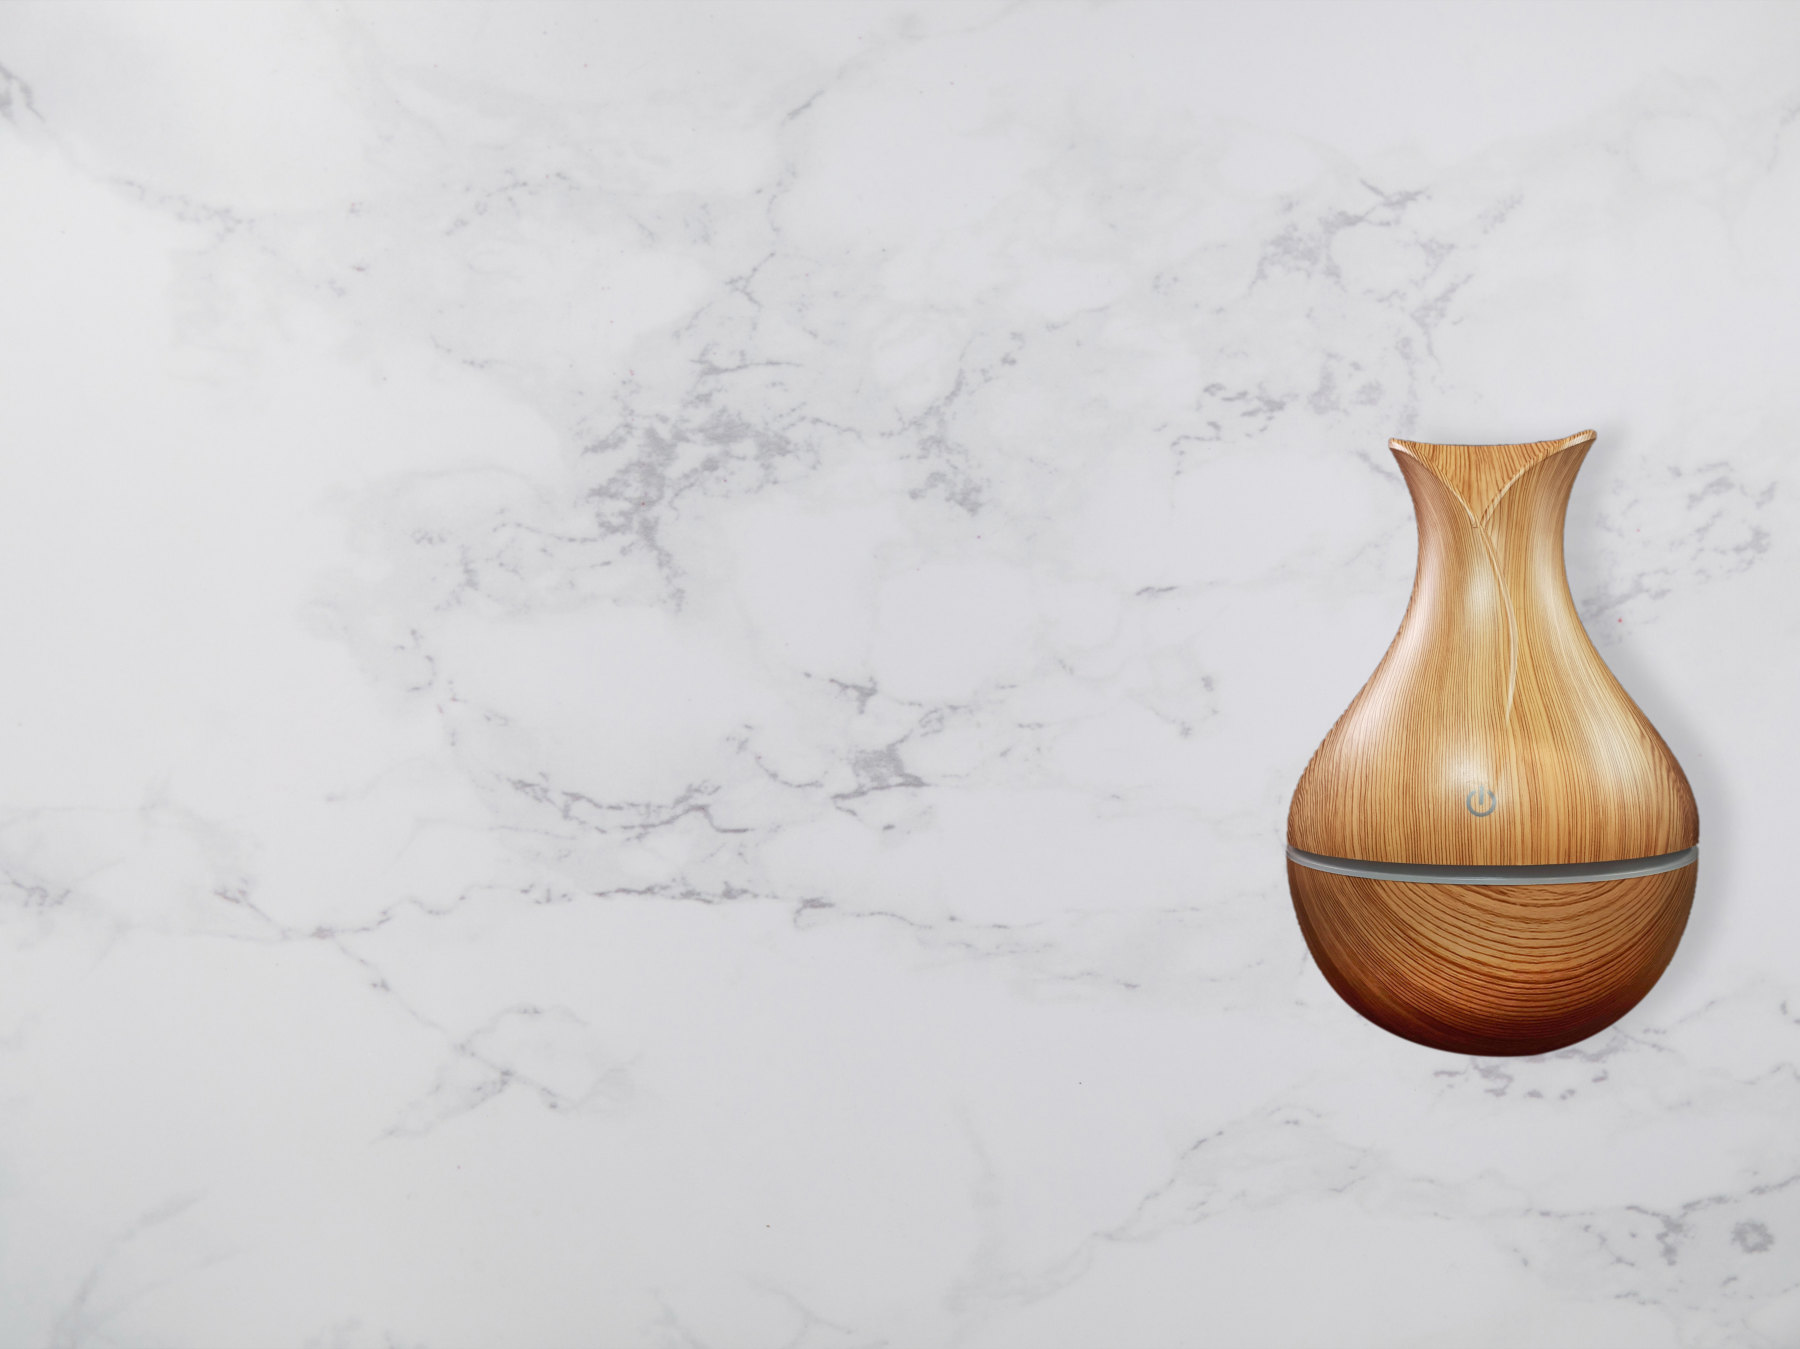 A light wood grain aromatherapy diffuser in front of a white marble background